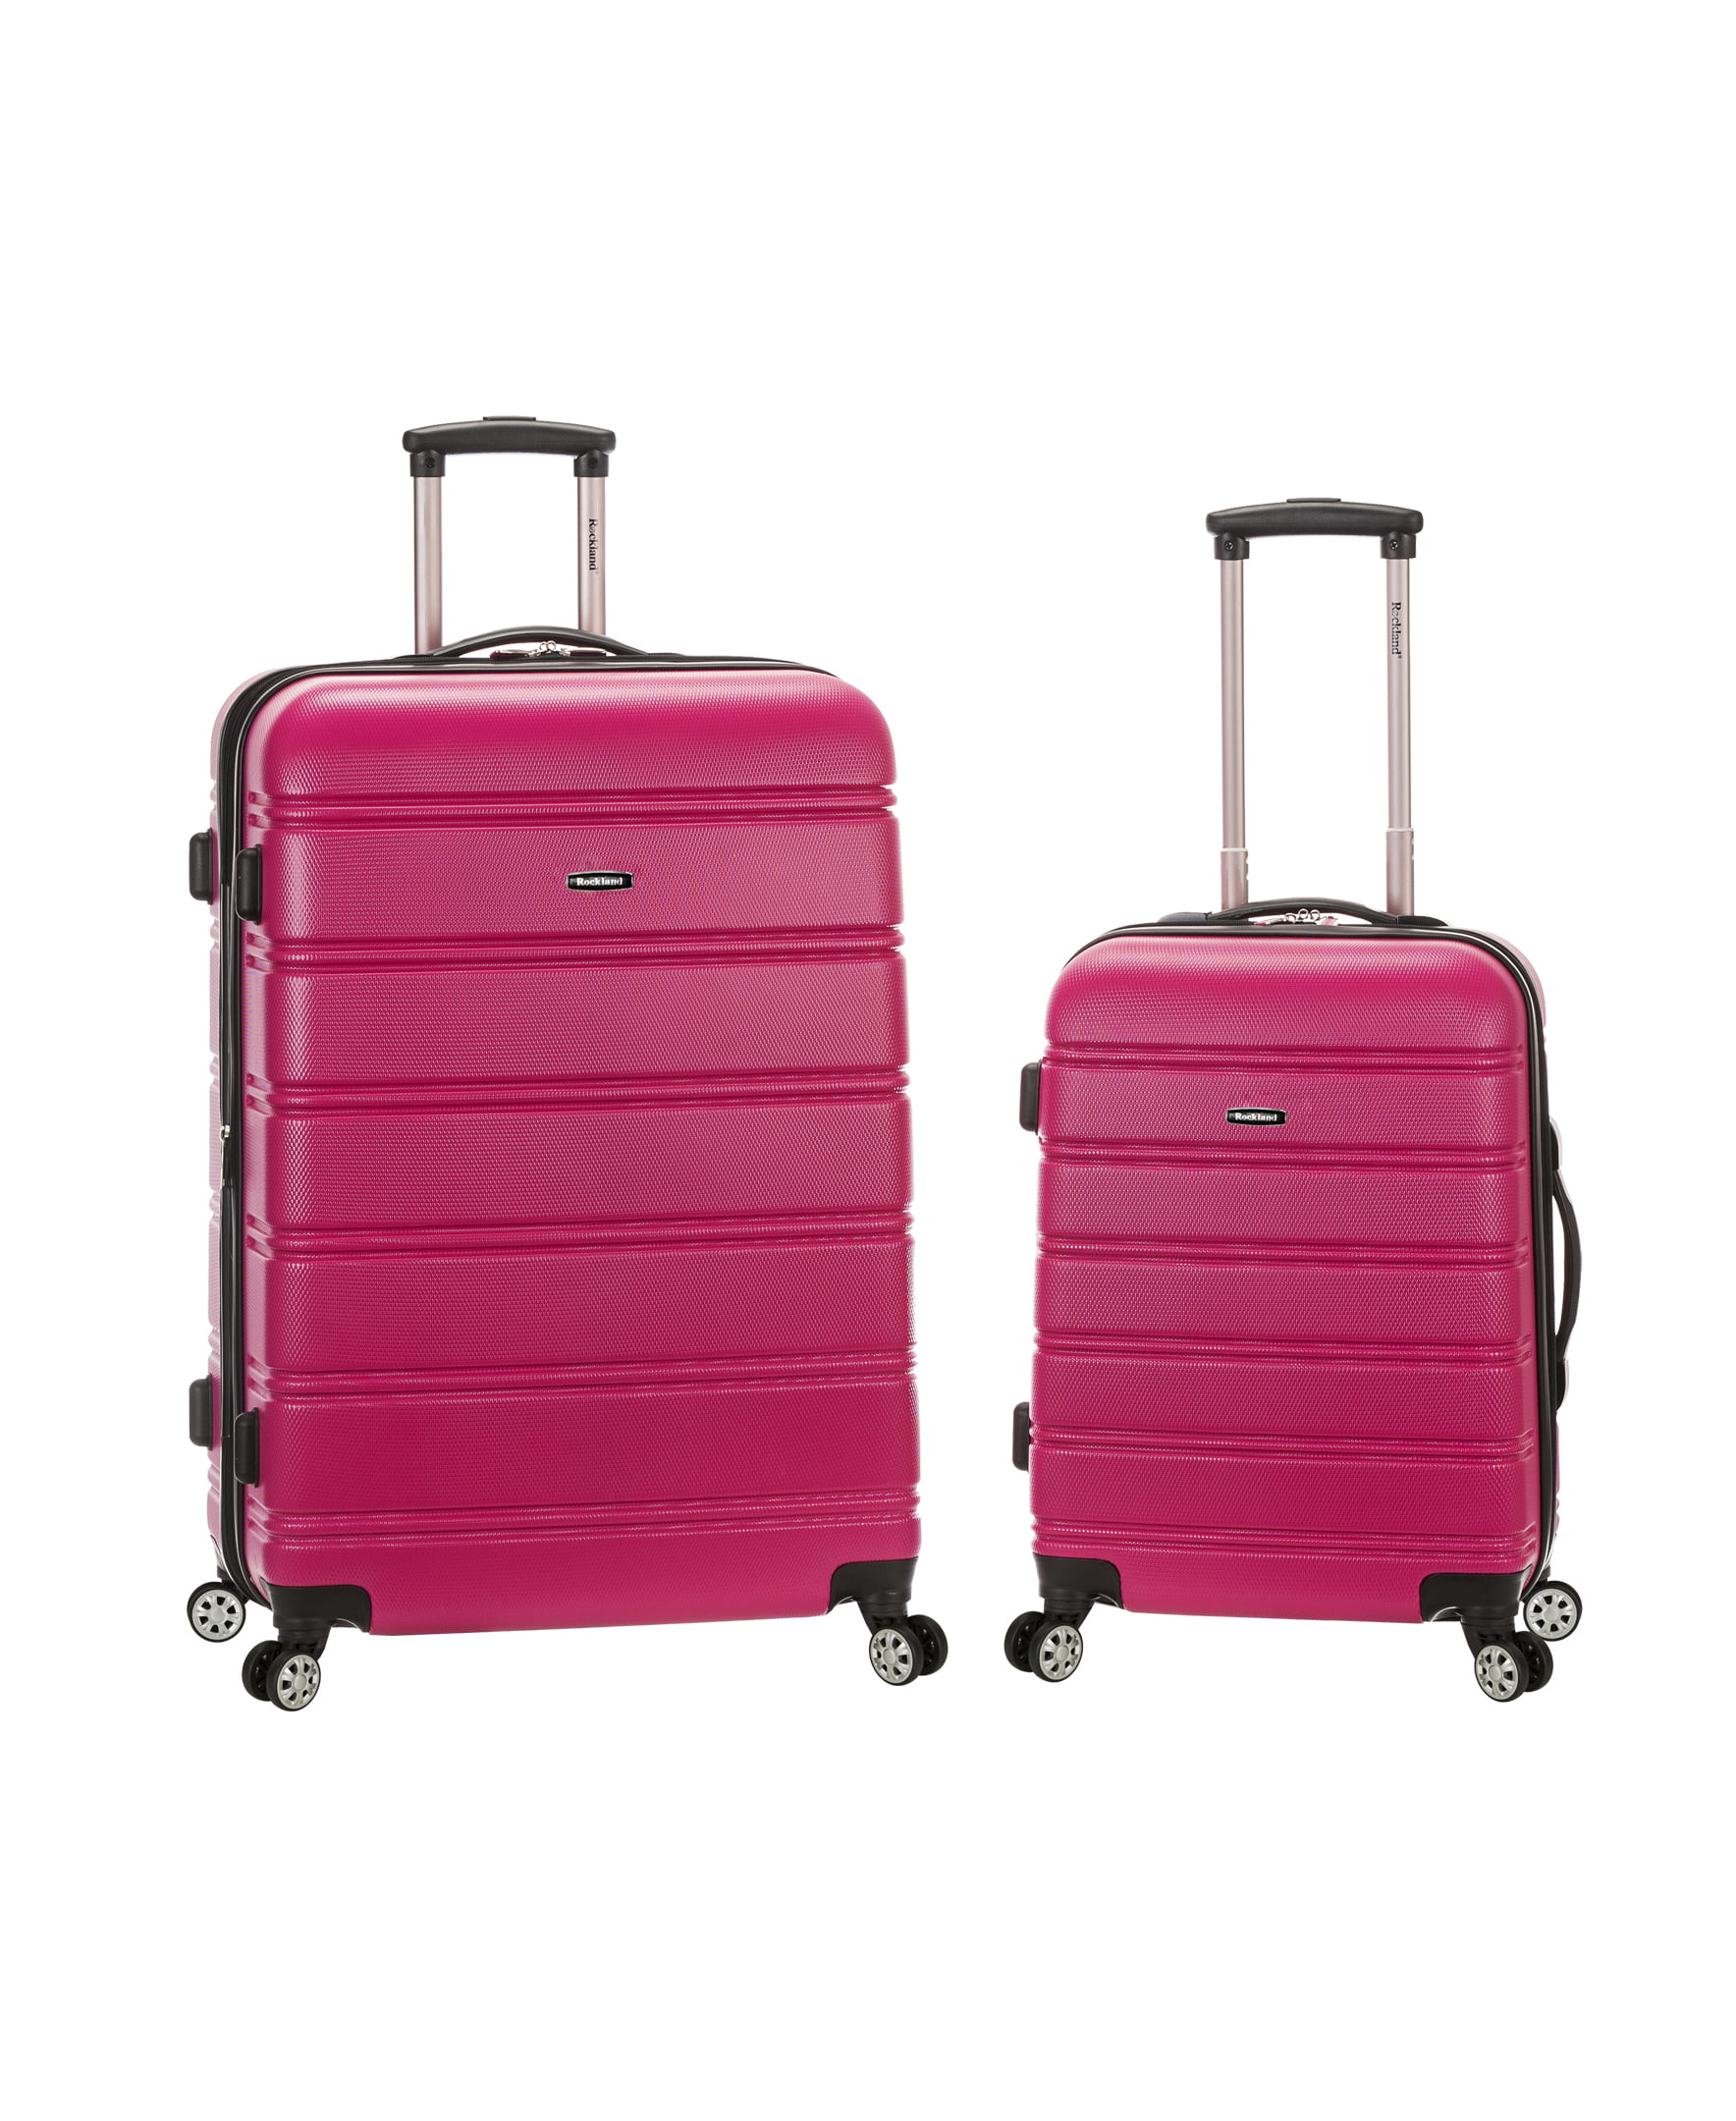 Rockland Melbourne Expandable ABS Spinner Luggage Set - Magenta